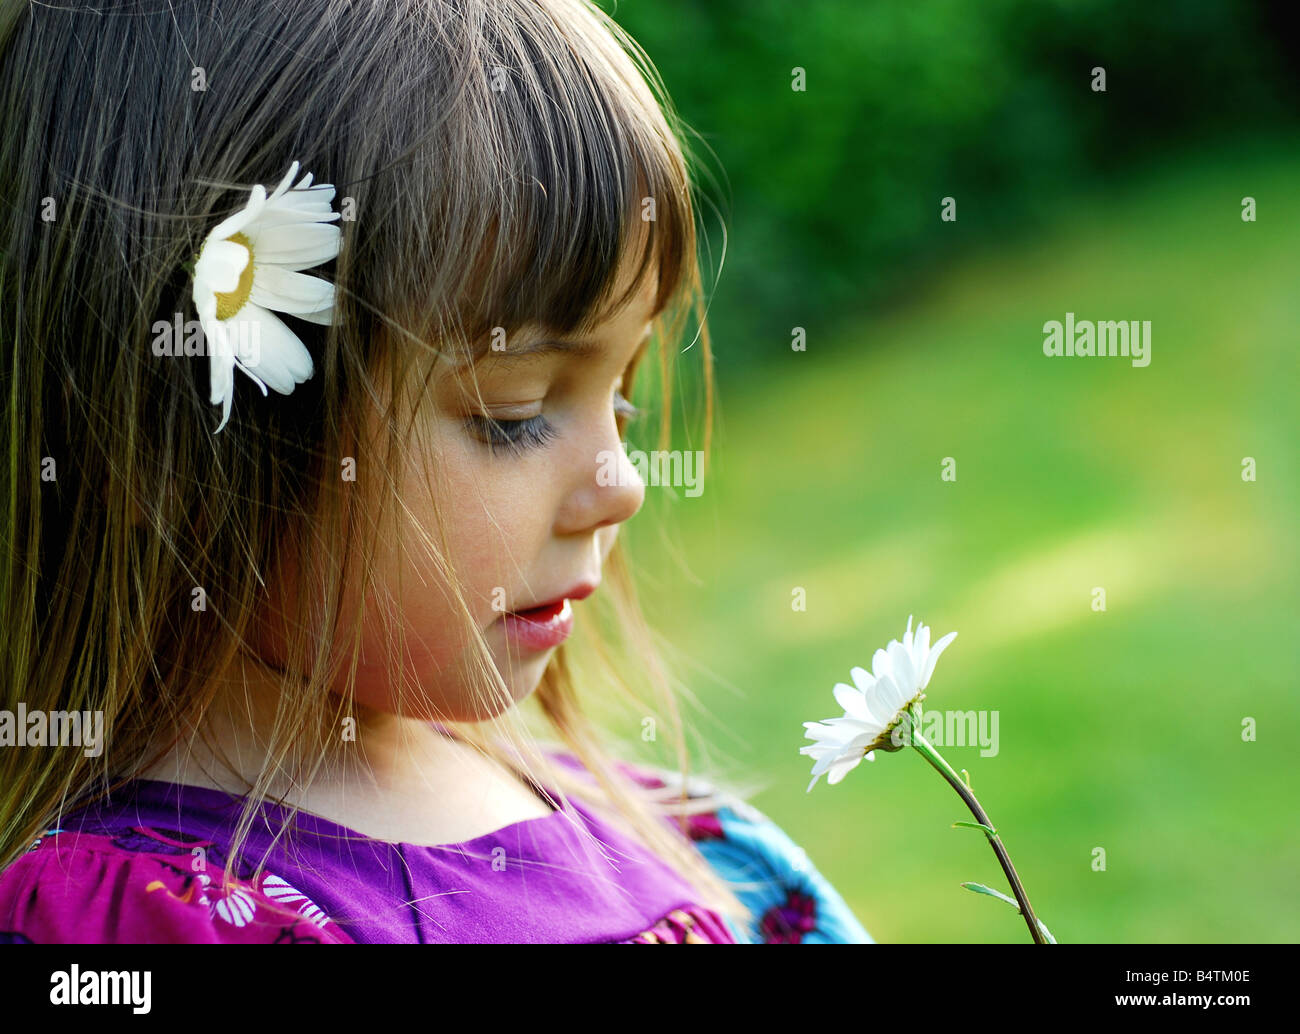 a little cute girl, child holding flower a daisy on a meadow stock